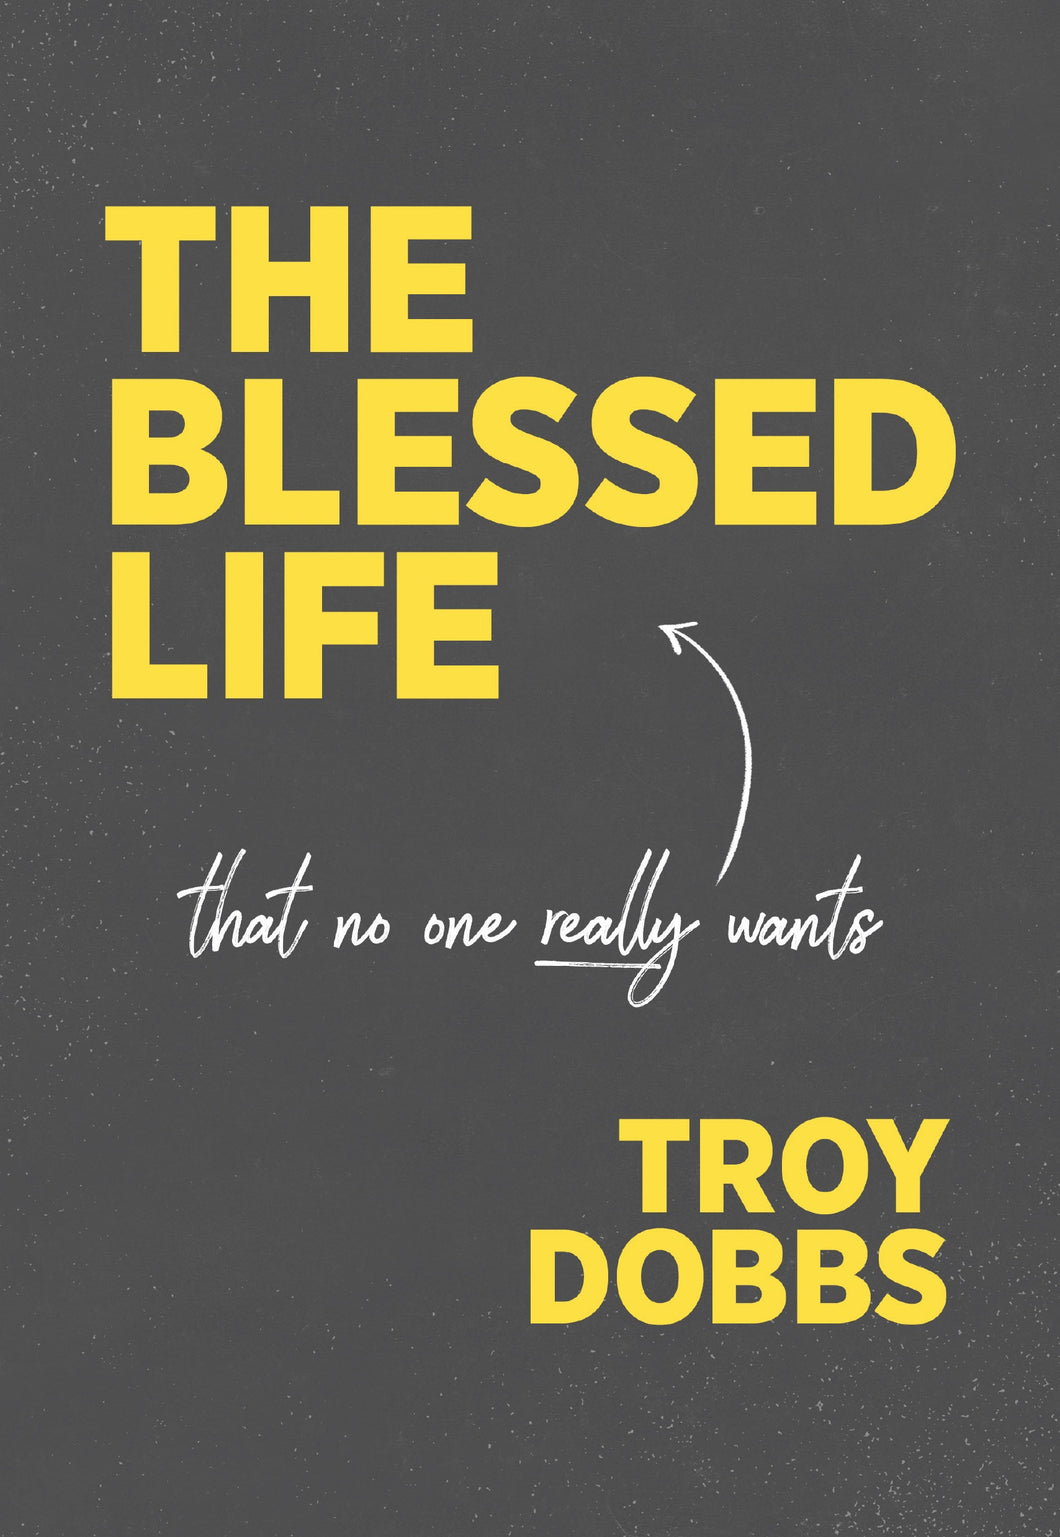 Troy Dobbs The Blessed Life, That No One Really Wants